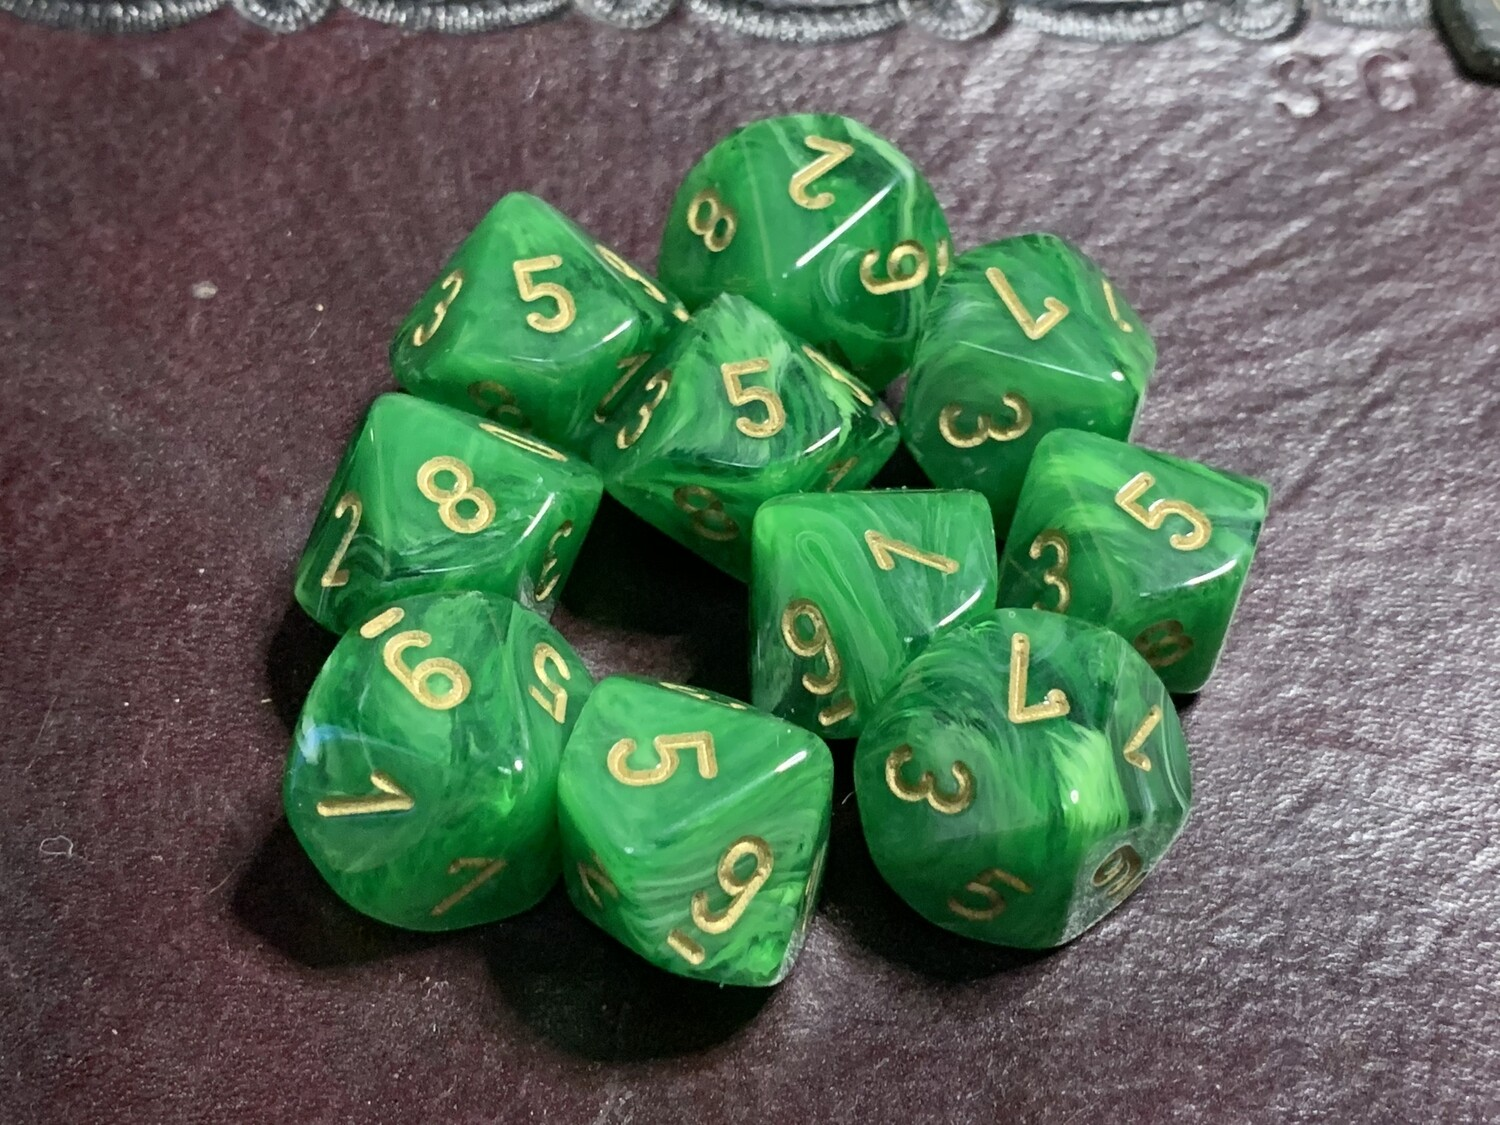 Chessex Dice 10d10 Vortex Green with Gold Tabletop Roleplay Gaming RPG